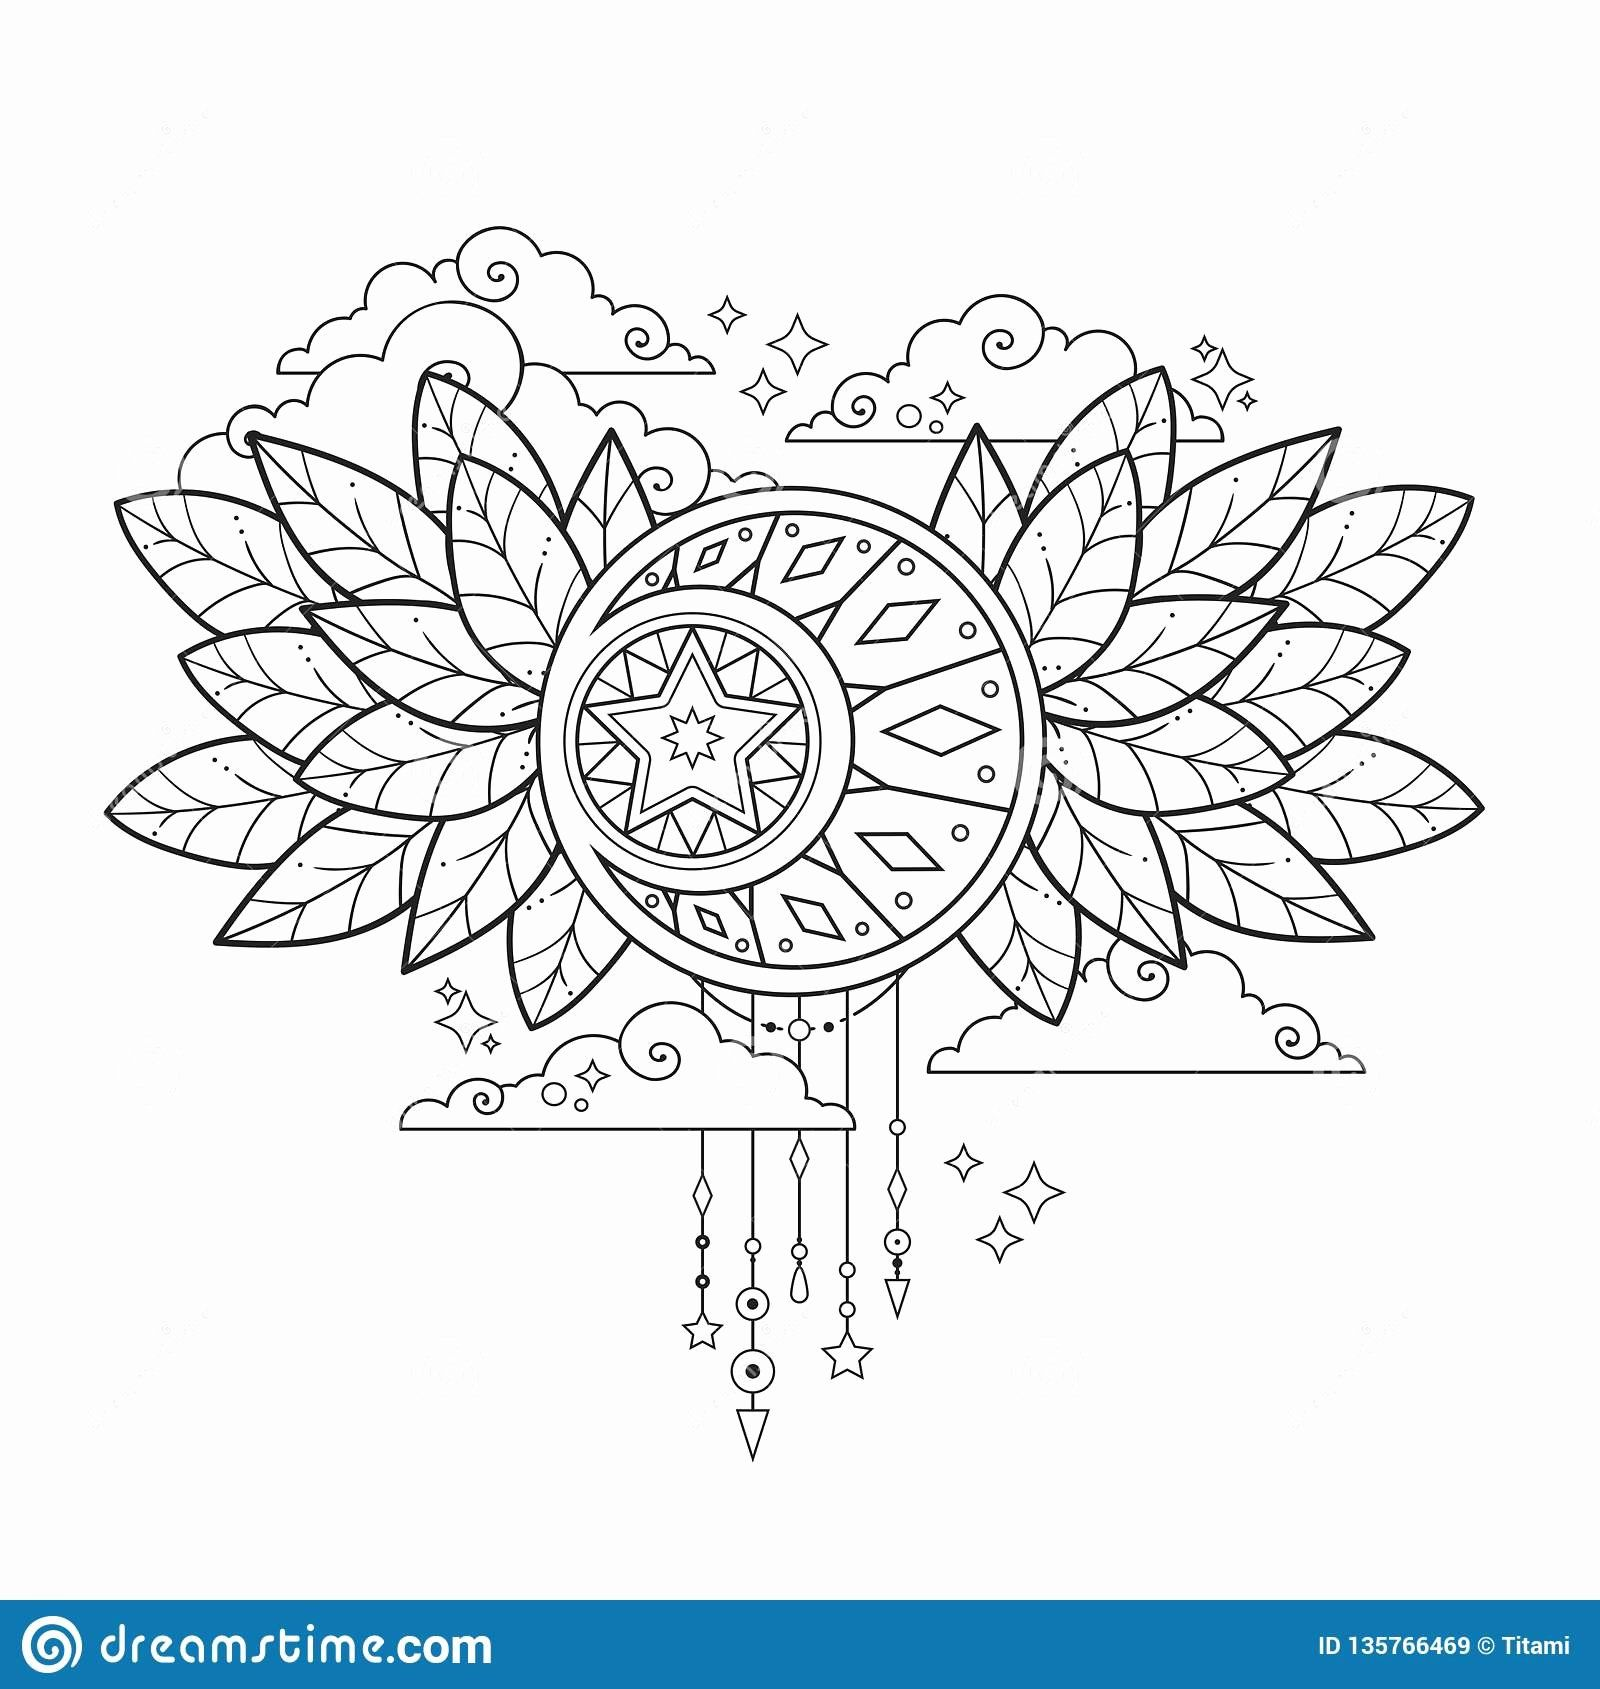 Palm Branch Coloring Sheet Awesome The Moon In The Clouds And Leaves Stock Vector Designs Coloring Books Coloring Book Art Fairy Coloring [ 1689 x 1600 Pixel ]